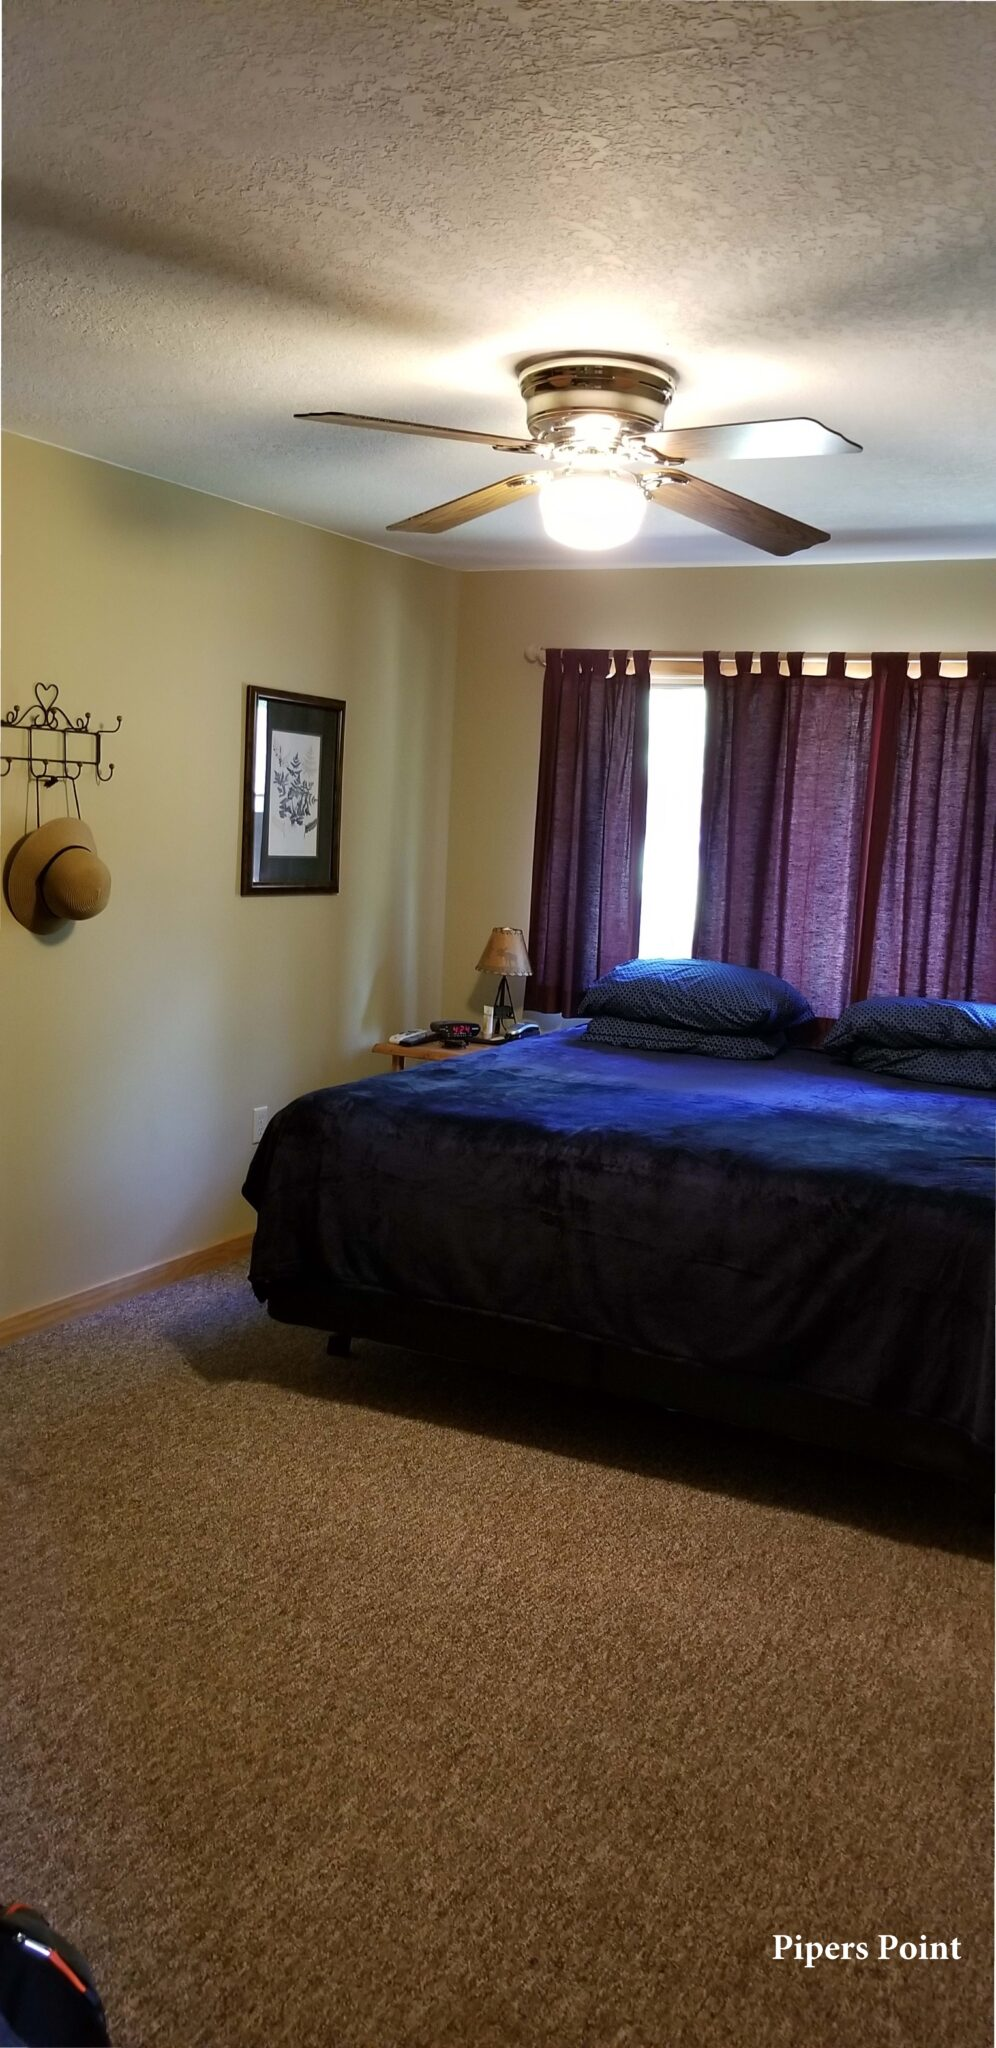 Pipers-Point-Master-Bedroom